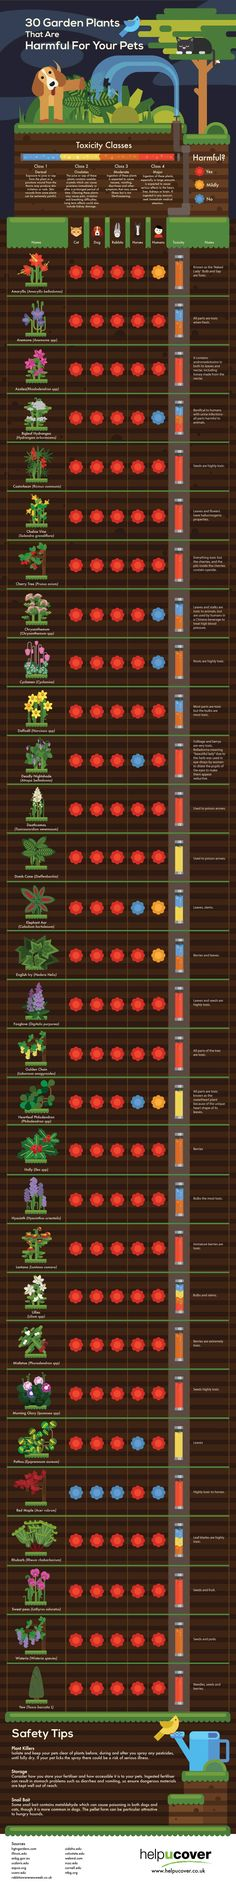 30 Garden Plants That Are Harmful for Pets. Infographic about toxic plants in the garden.